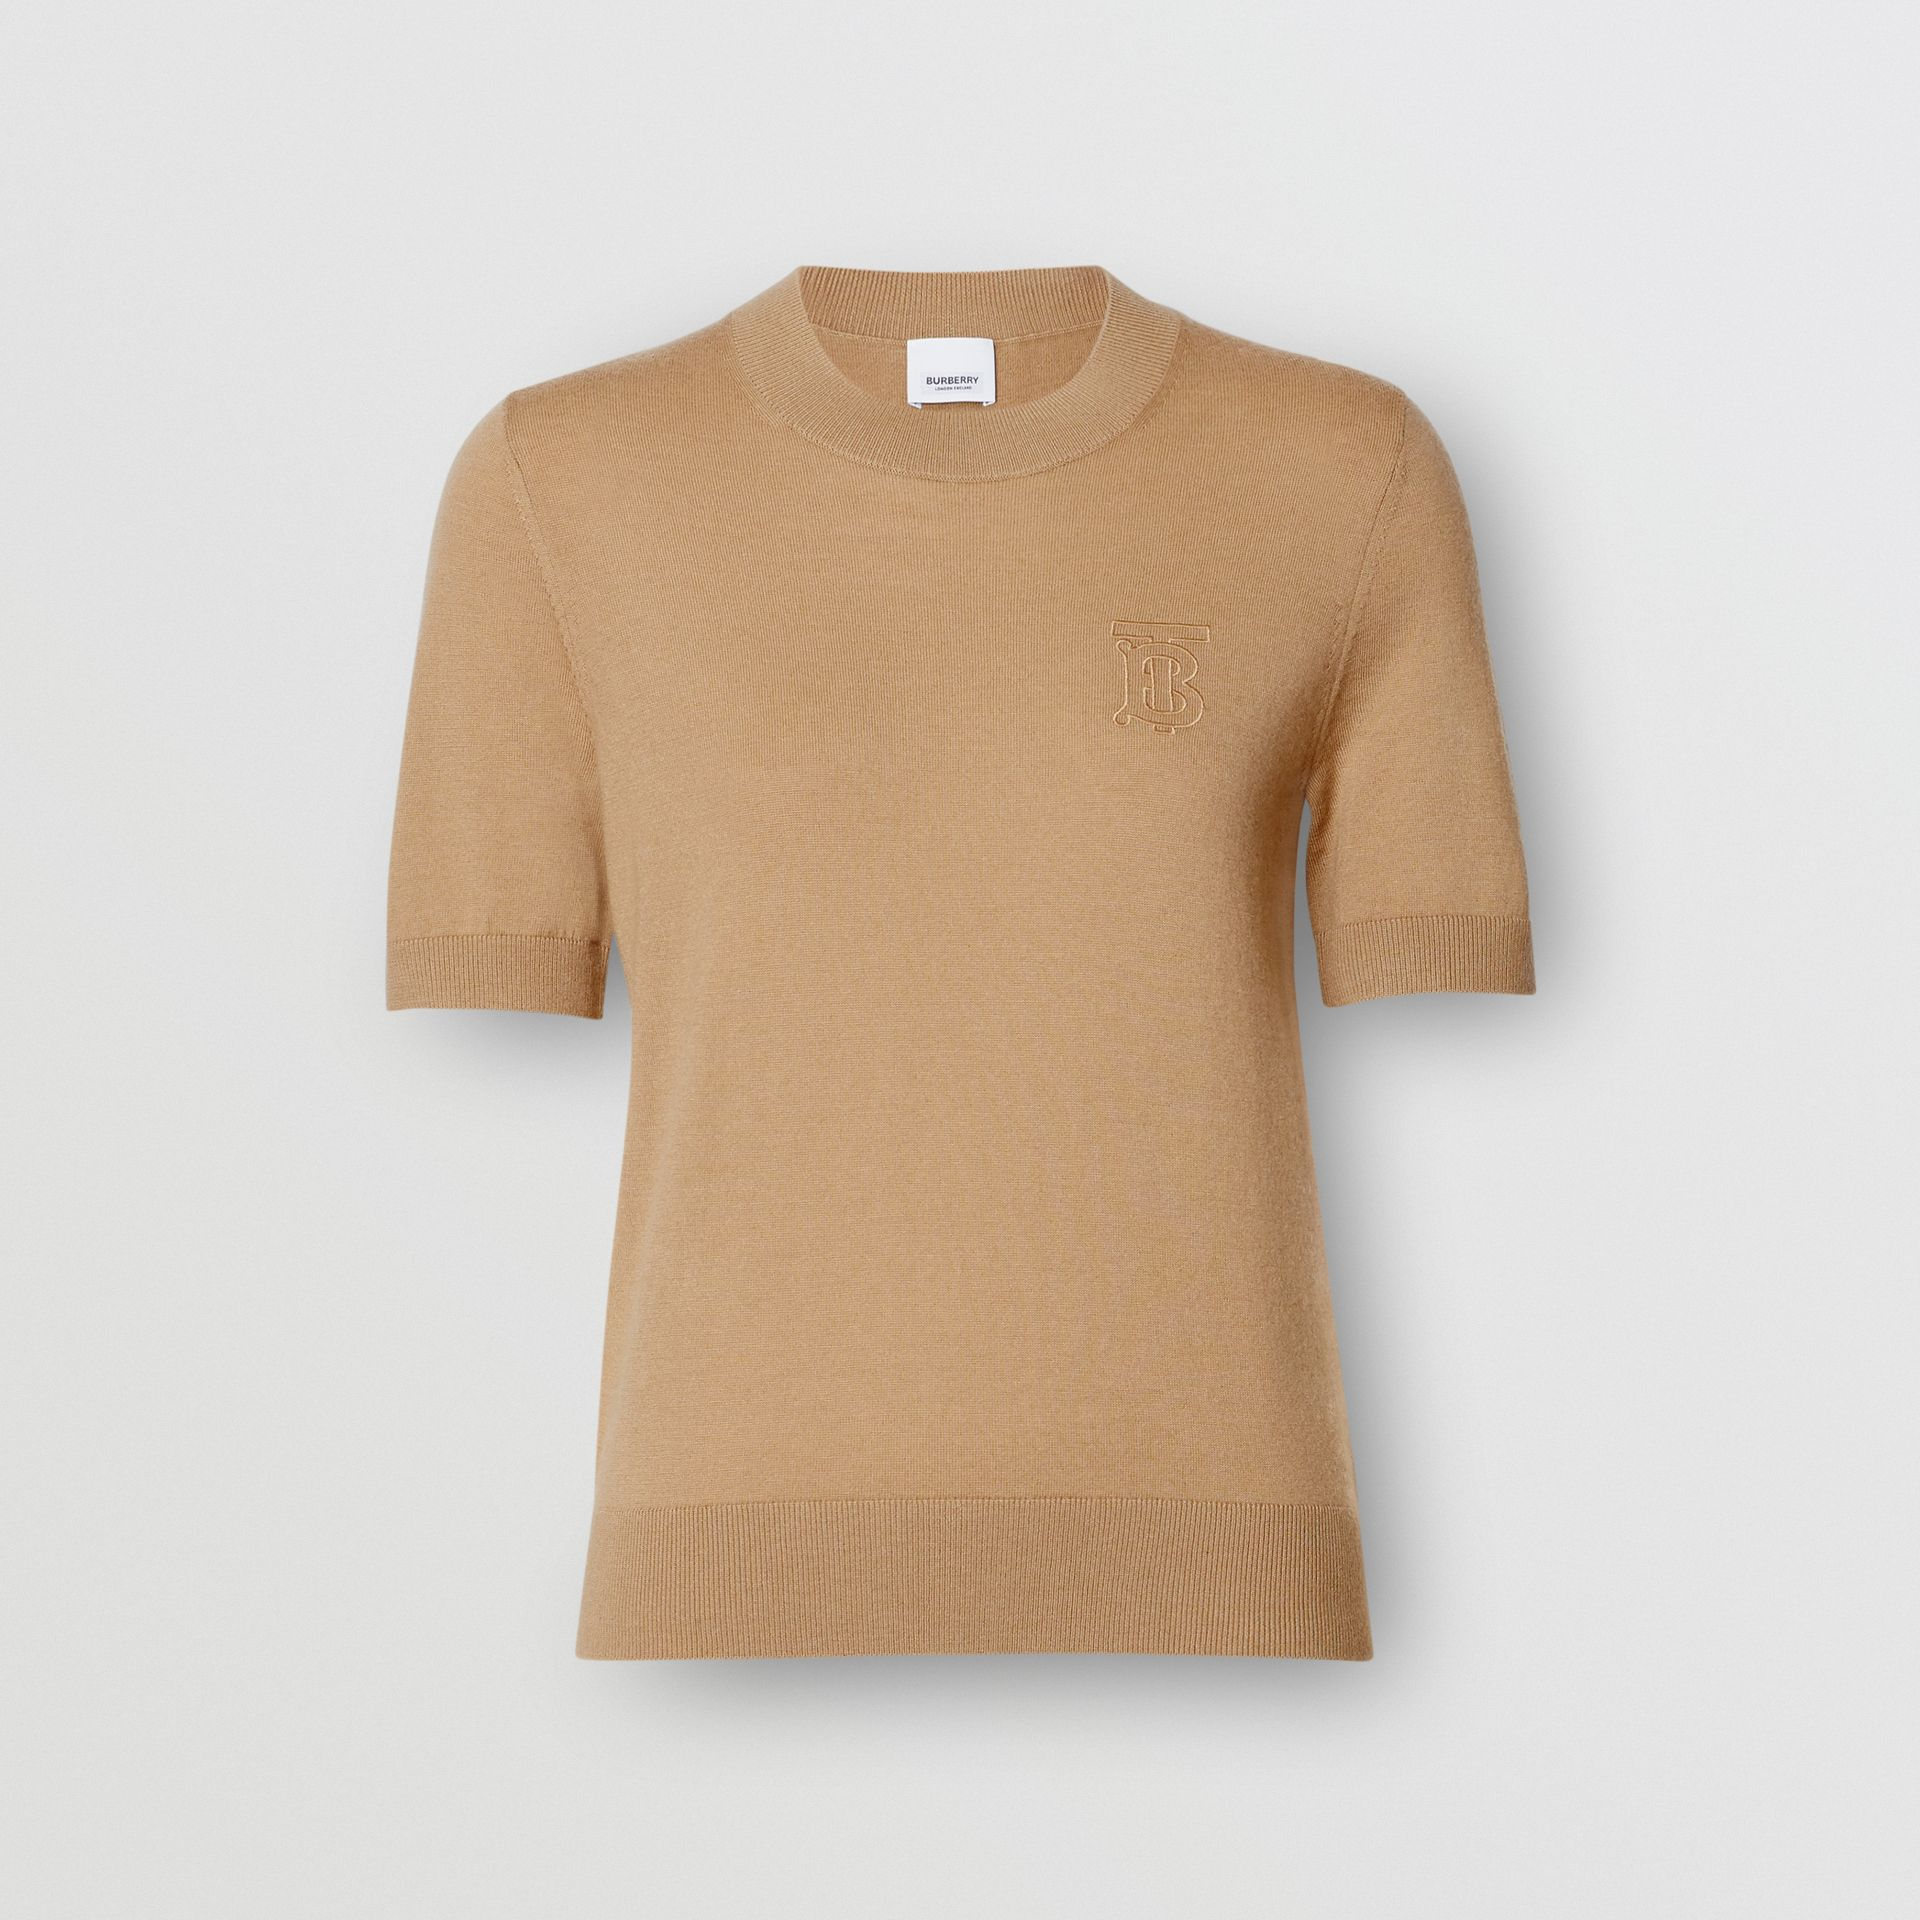 Monogram Motif Cashmere Top in Archive Beige - Women | Burberry Canada - gallery image 3